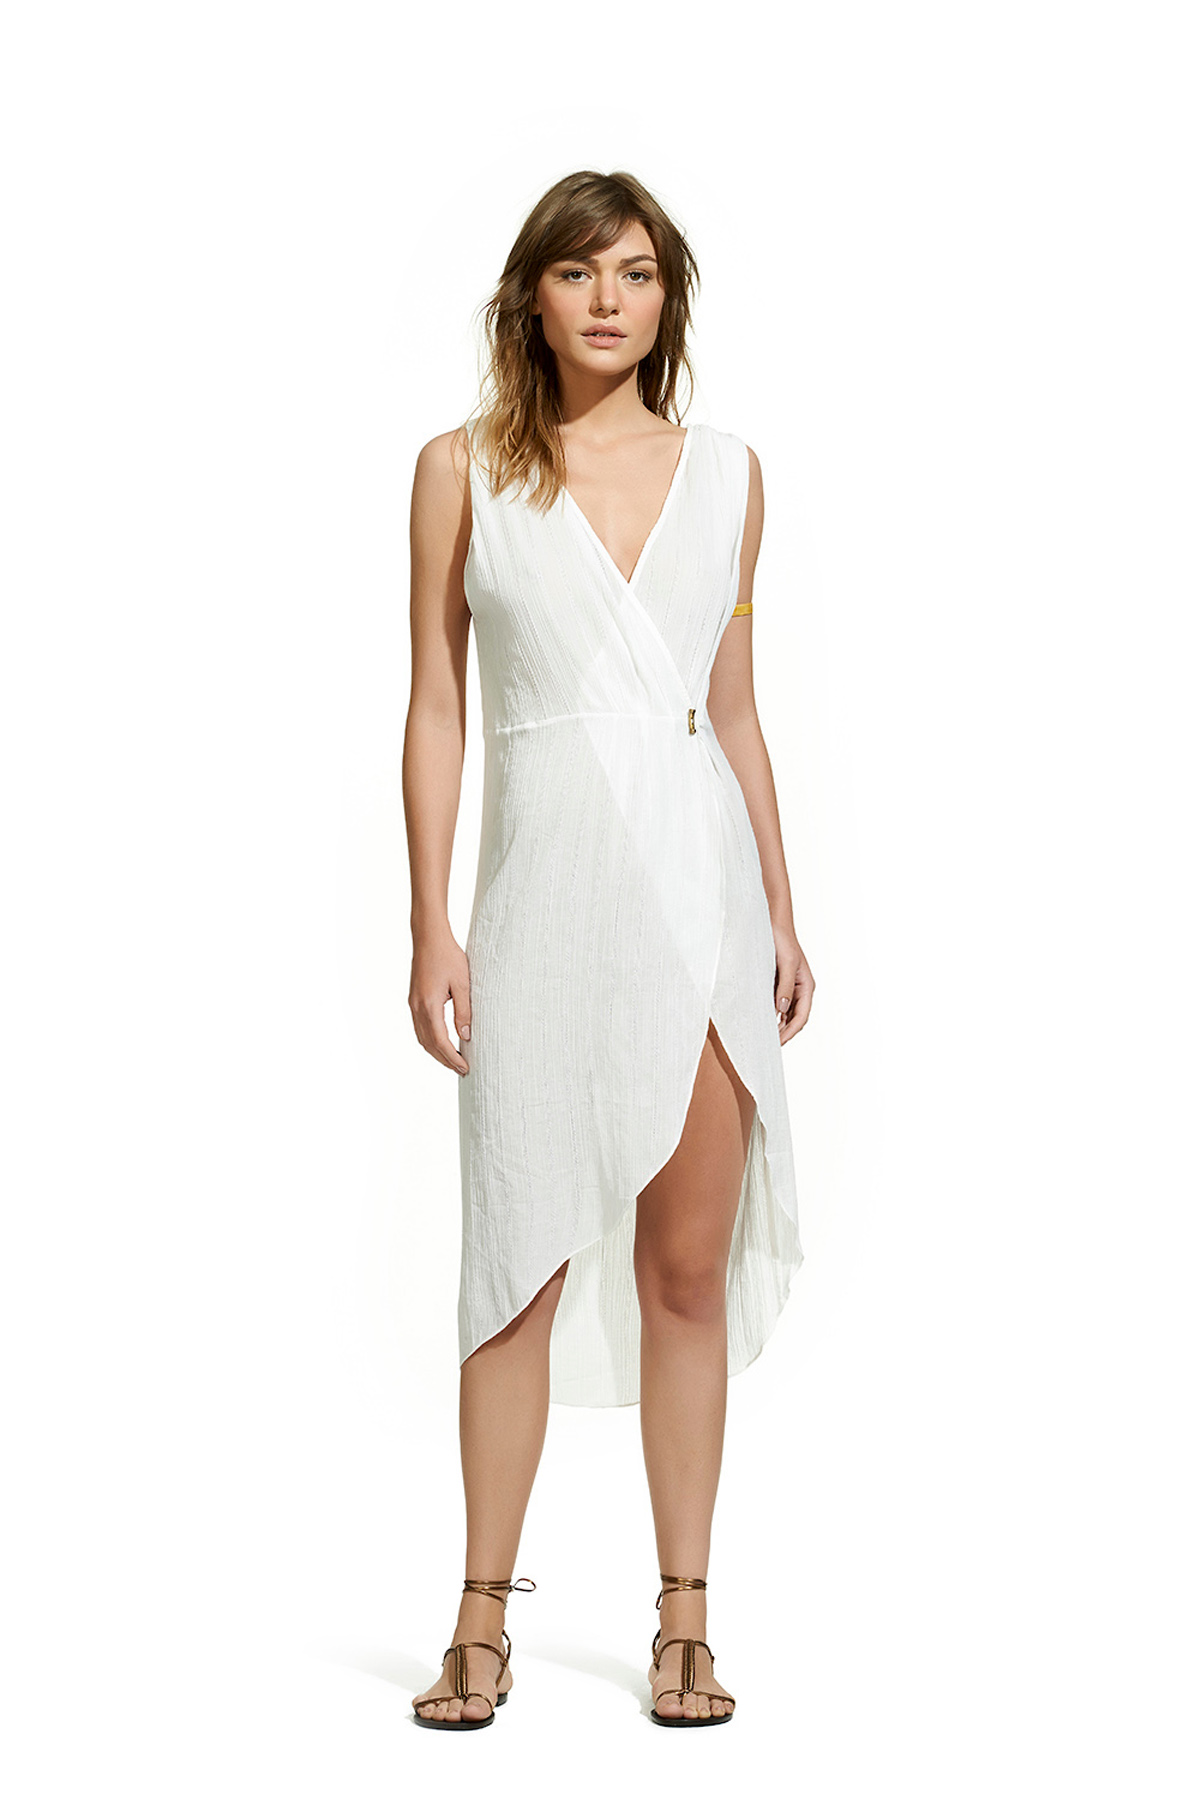 23-off-white-gisele-caftan-vs172064-3-copiar